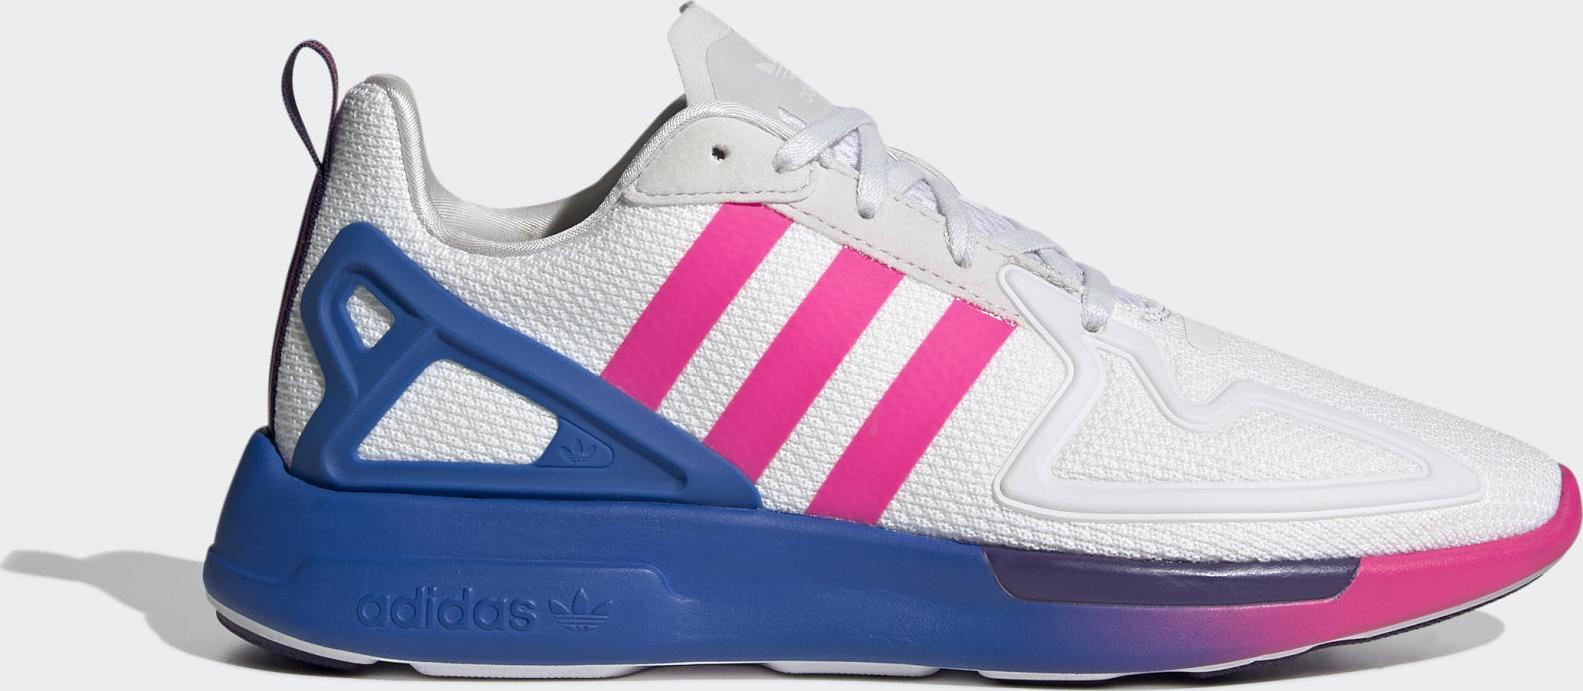 adidas ZX 2K Flux Crystal White / Shock Pink / Blue